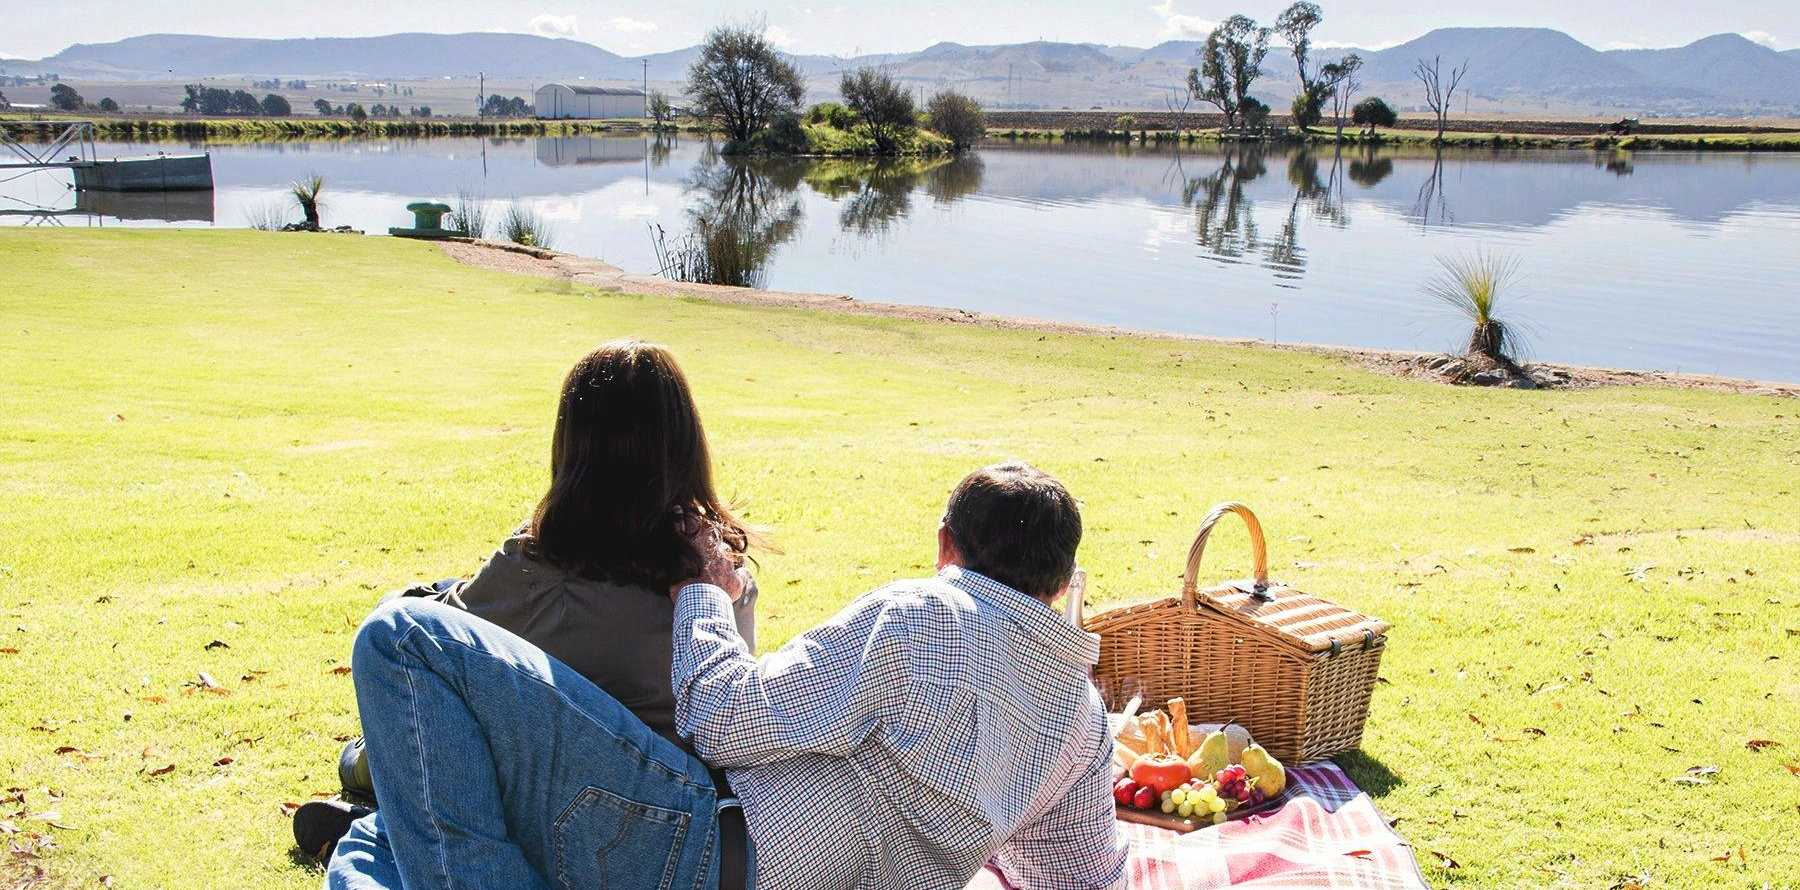 WINE AND DINE: Join the Killarney Picnic Basket Day at Melrose Station this Sunday.